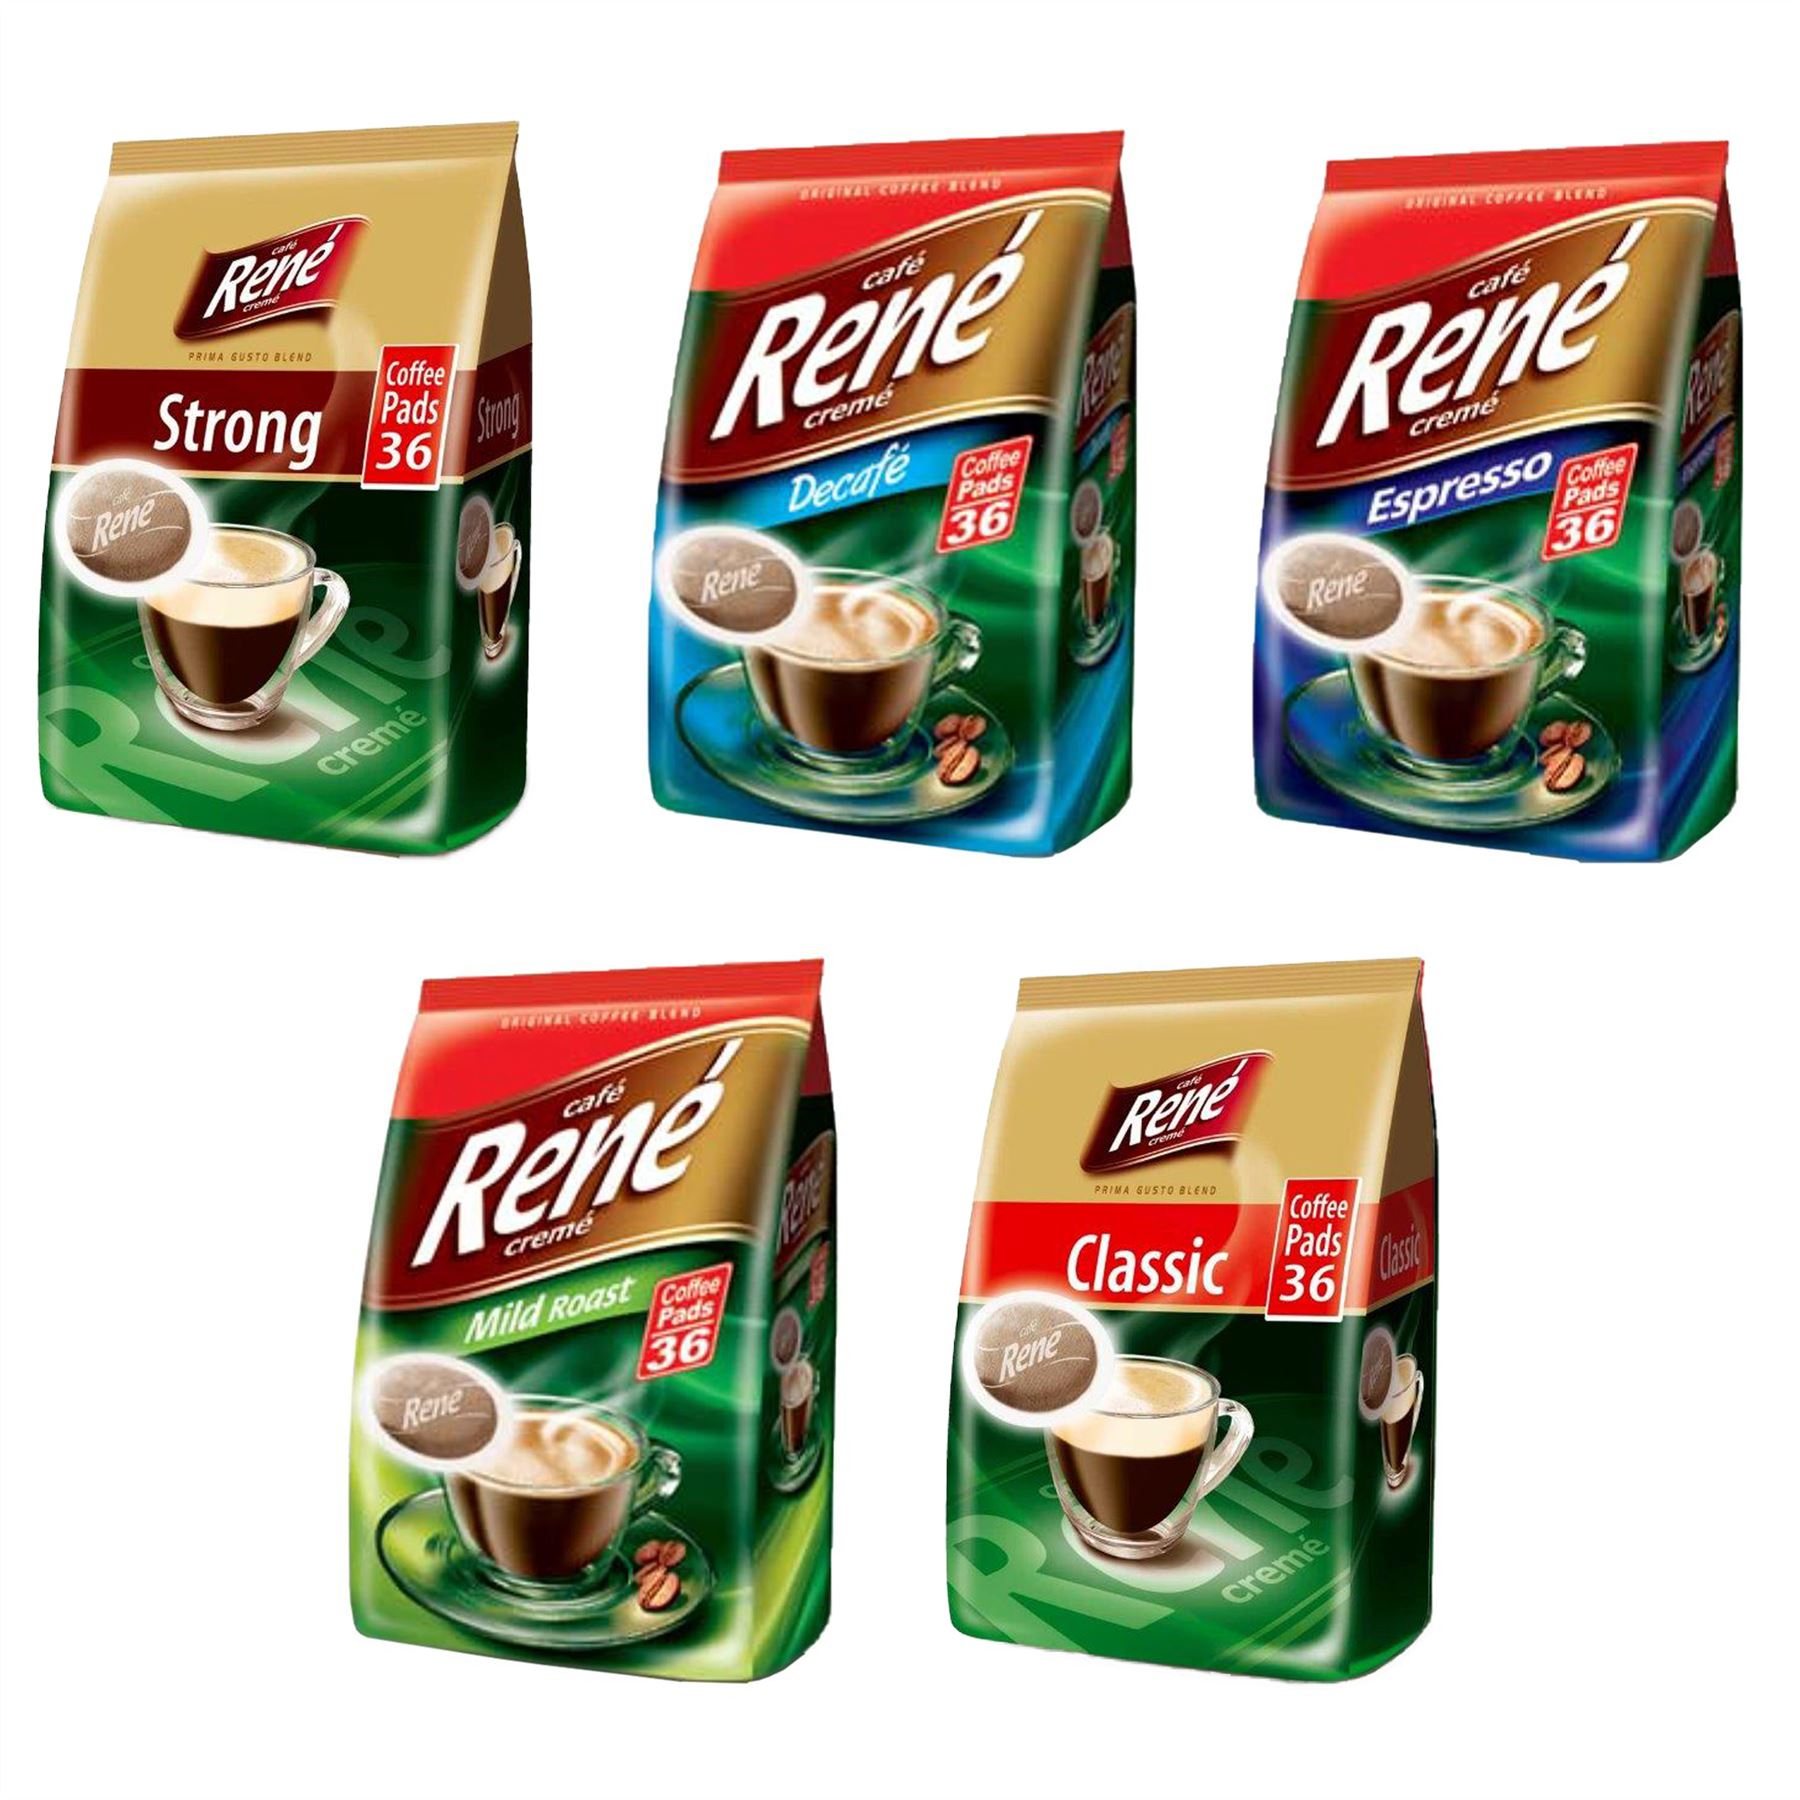 Details About Philips Senseo Luxury Cafe Rene Creme Range Coffee Pads Pods Bag 252 G